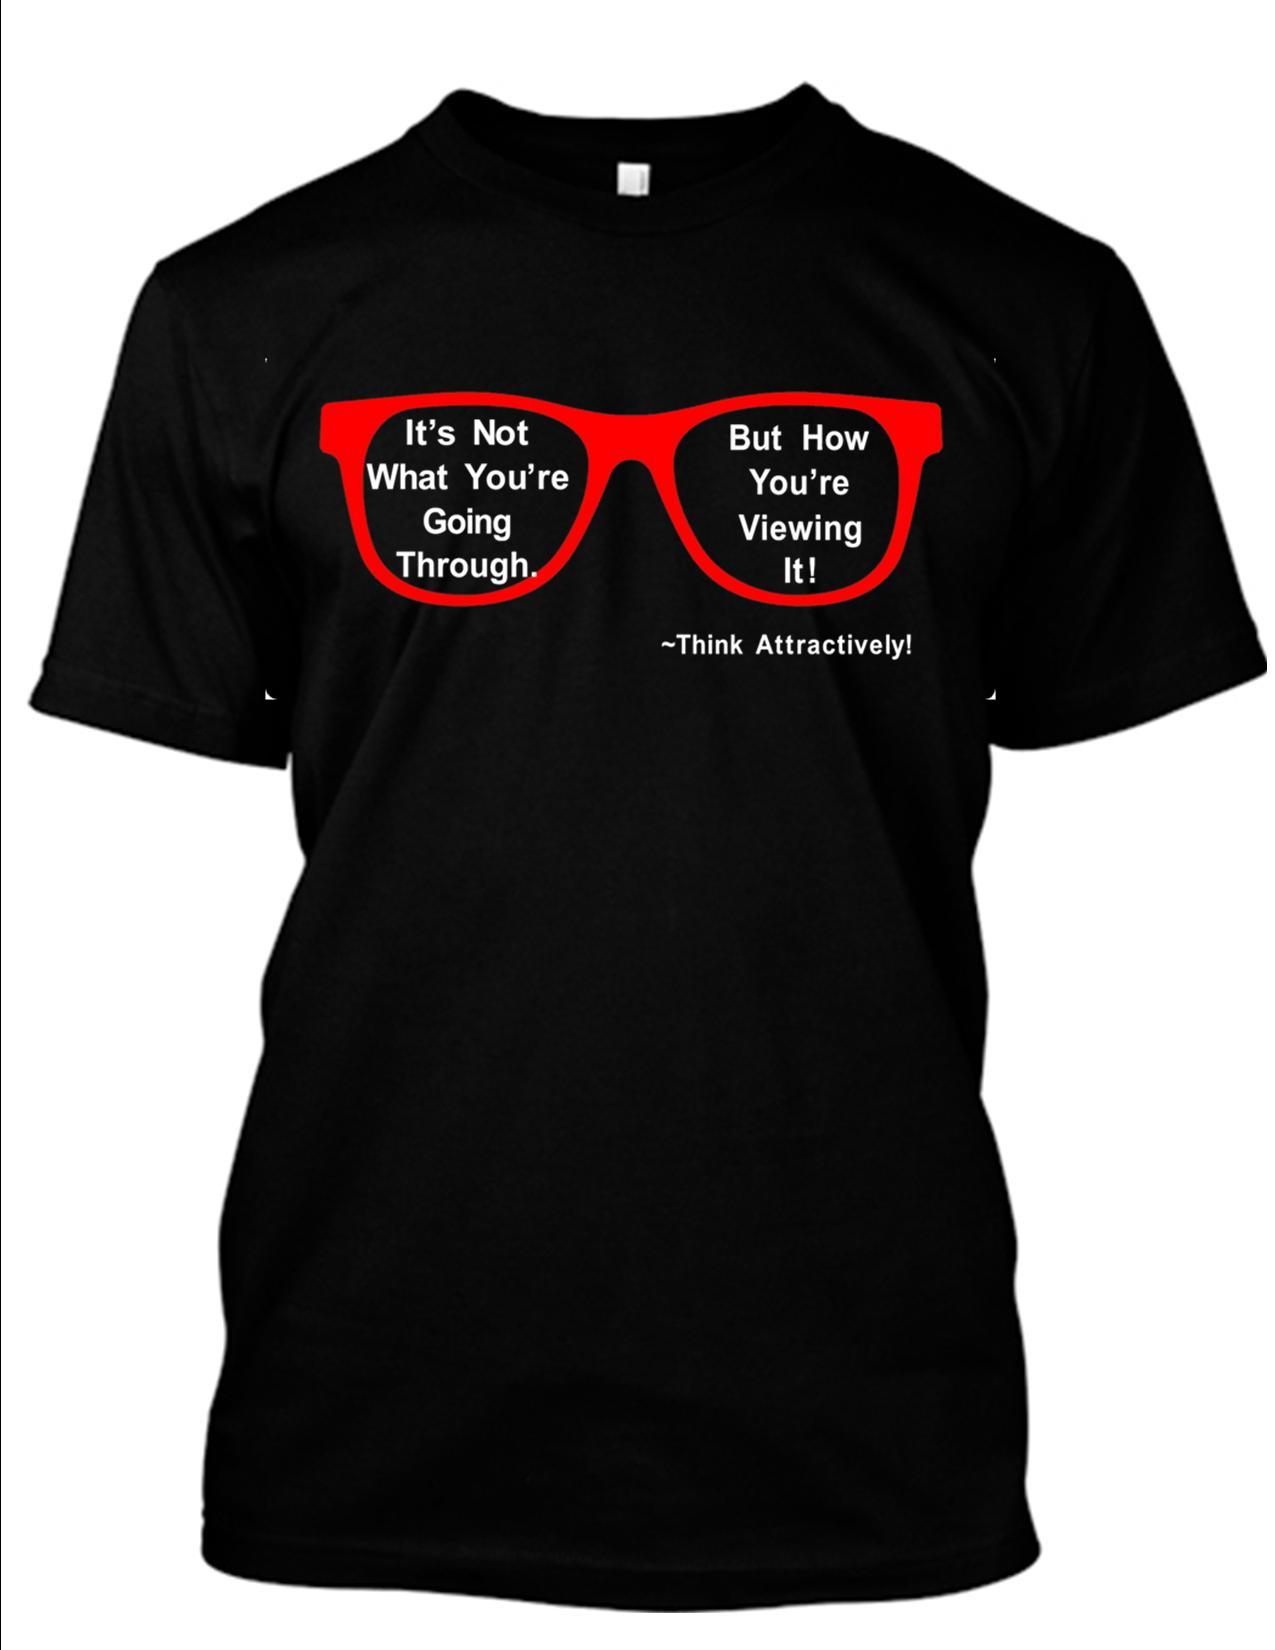 Its Not What Youre Going Through Red T shirt for Website